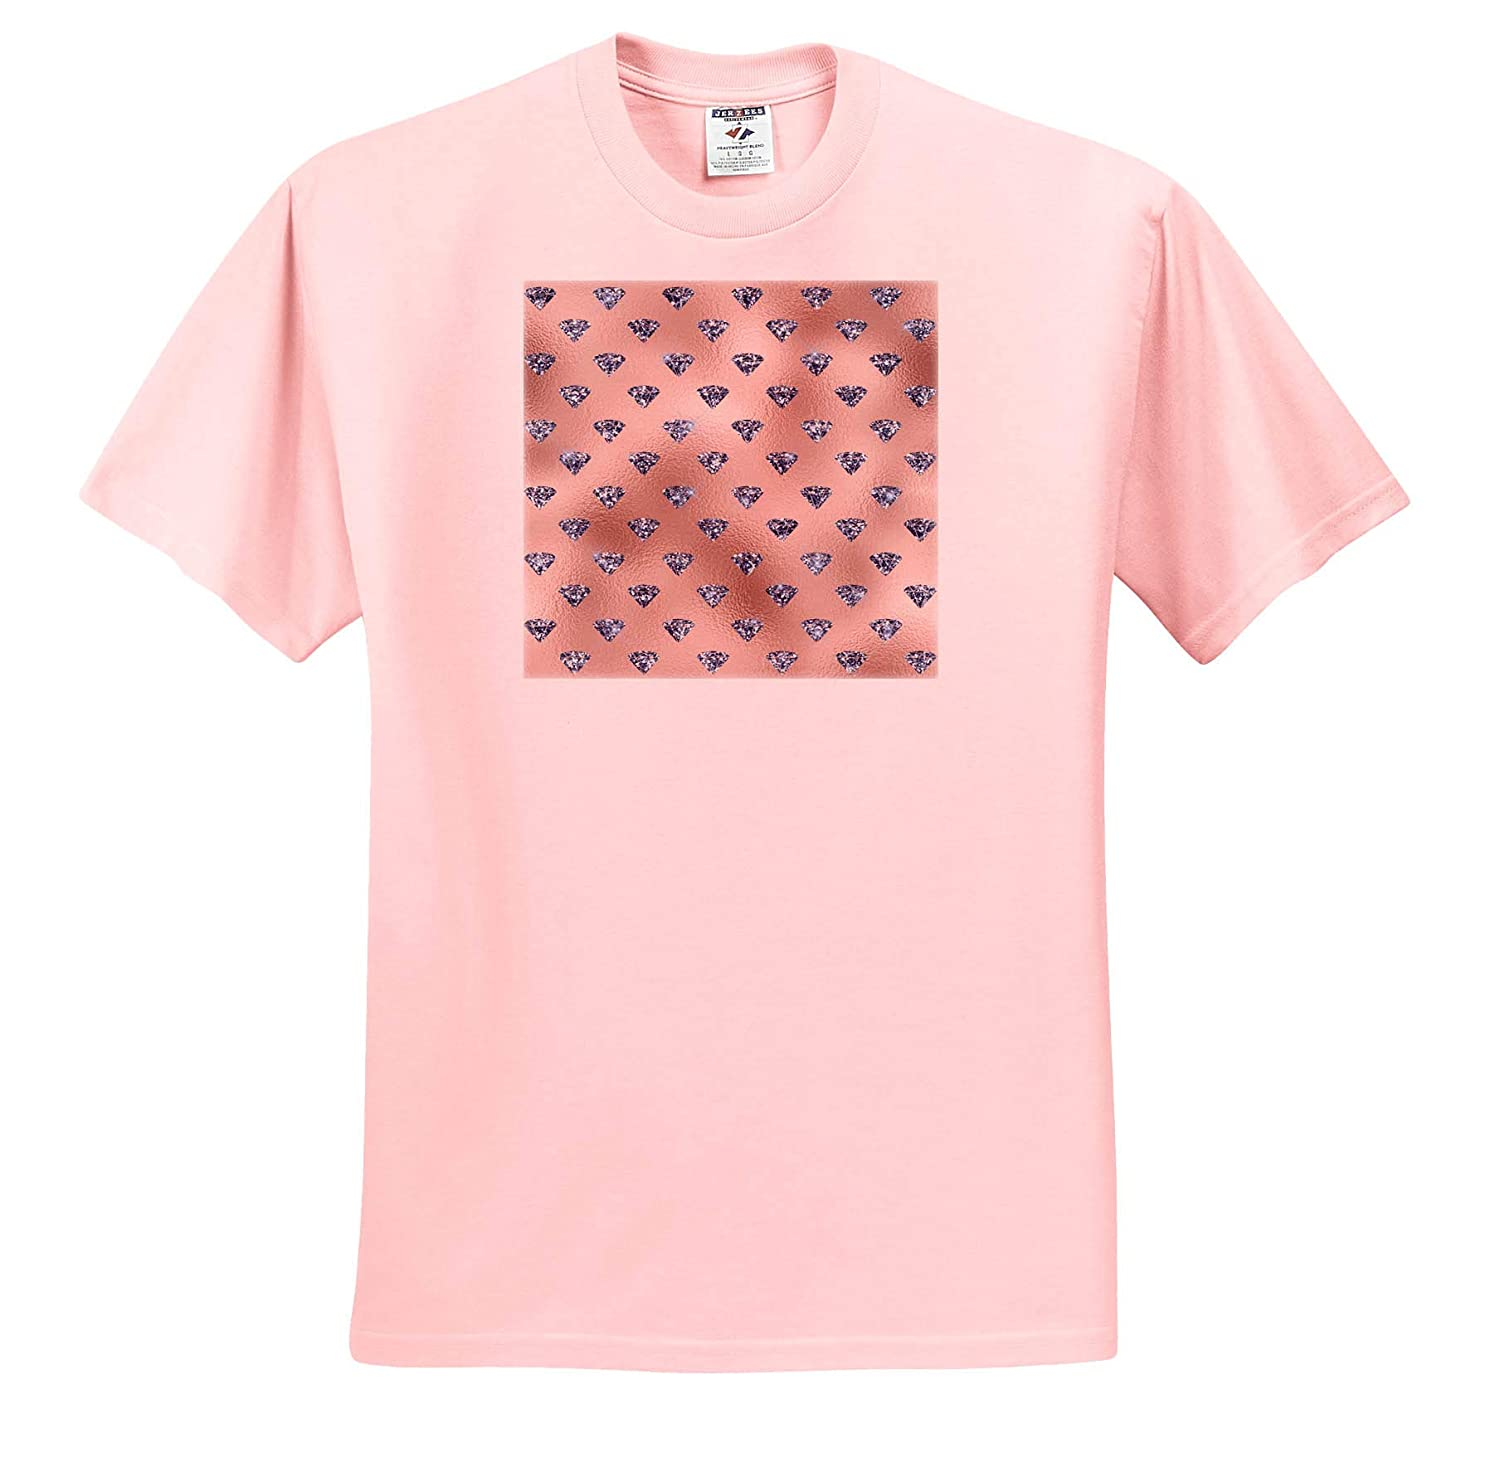 Adult T-Shirt XL Glam Blue Image of Jewels On Image of Pink Foil Pattern 3dRose Anne Marie Baugh ts/_317657 Patterns